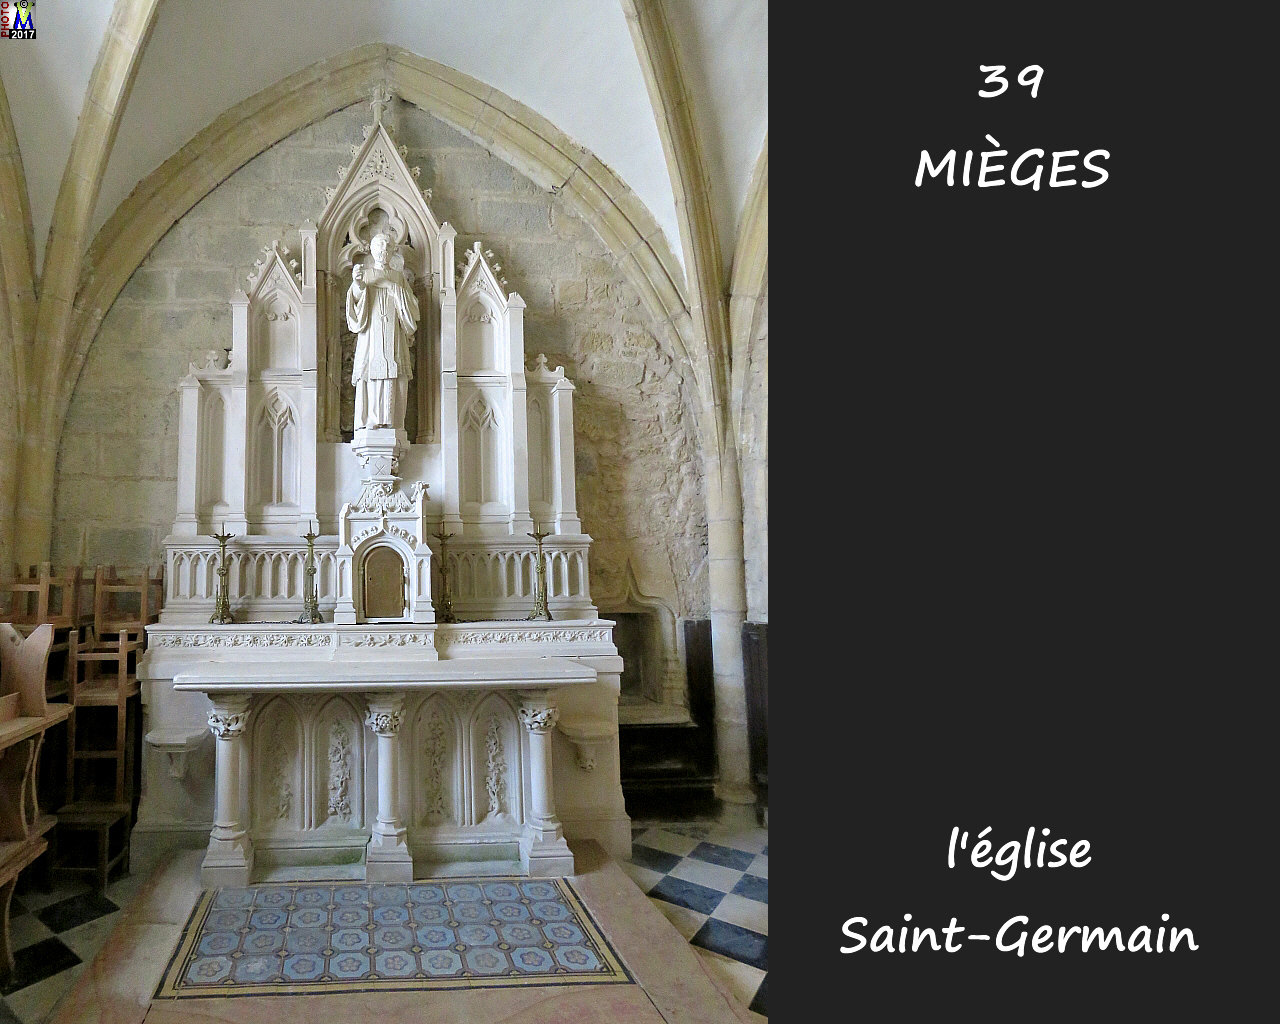 39MIEGES_eglise_229.jpg